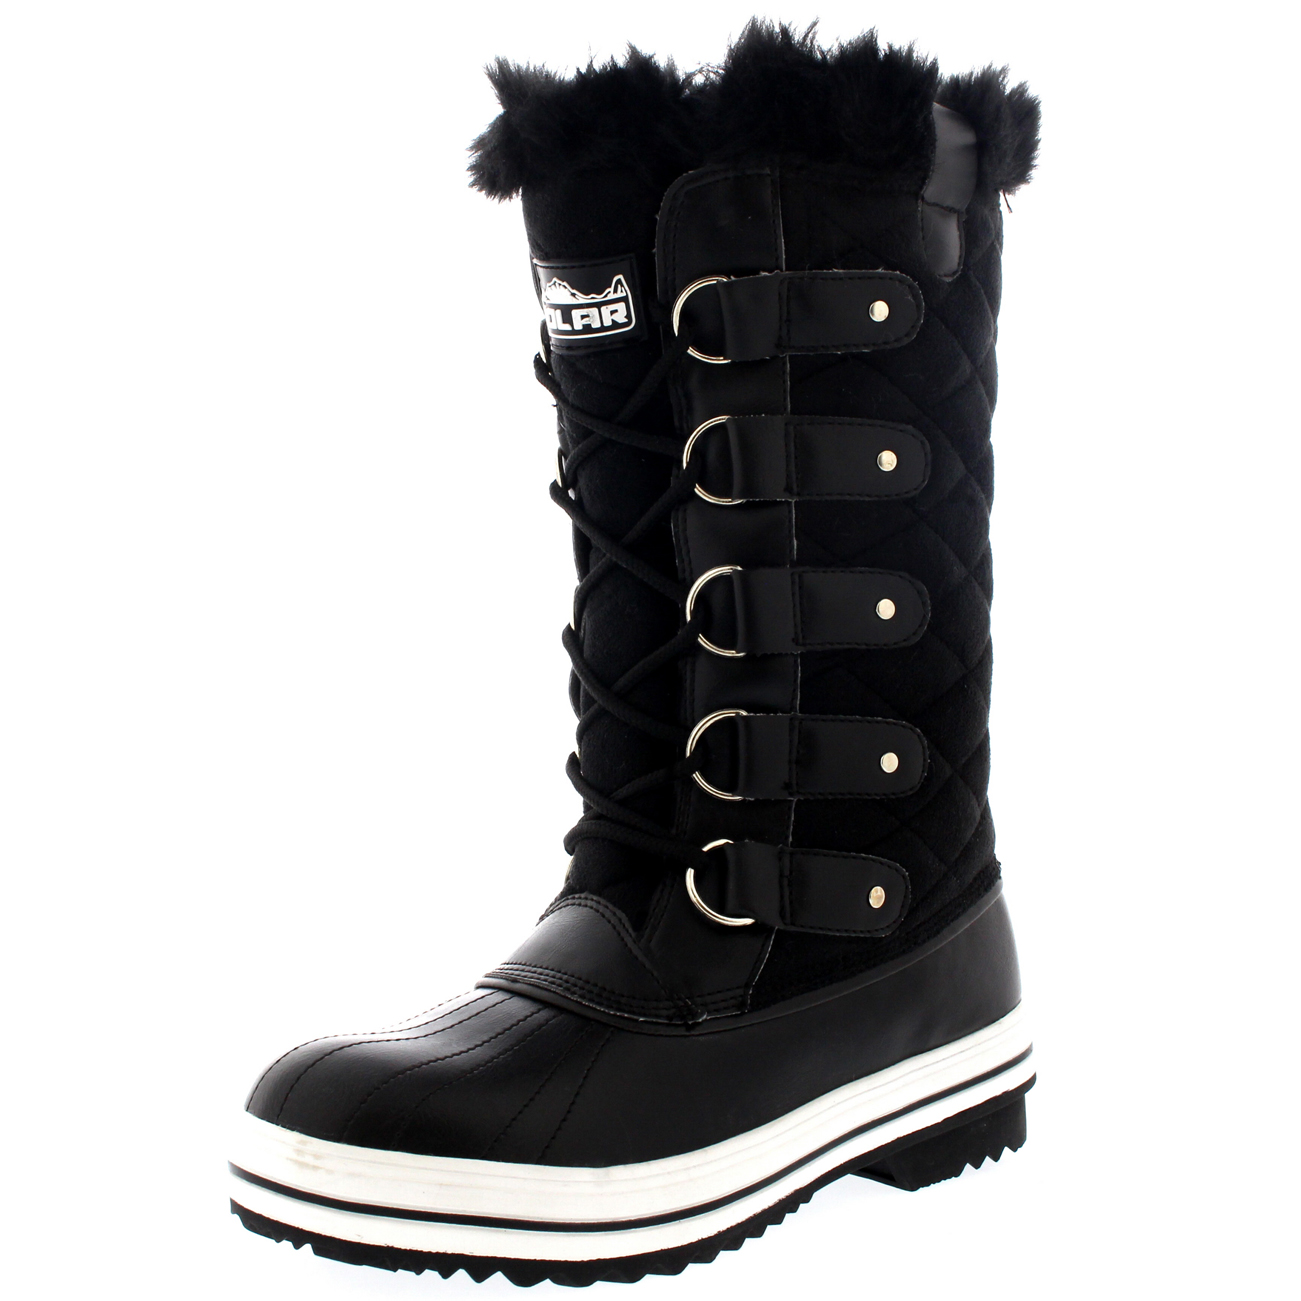 Wonderful  Lace Up Fur Lined Warm Shoes Duck Winter Snow Boots UK 310  EBay